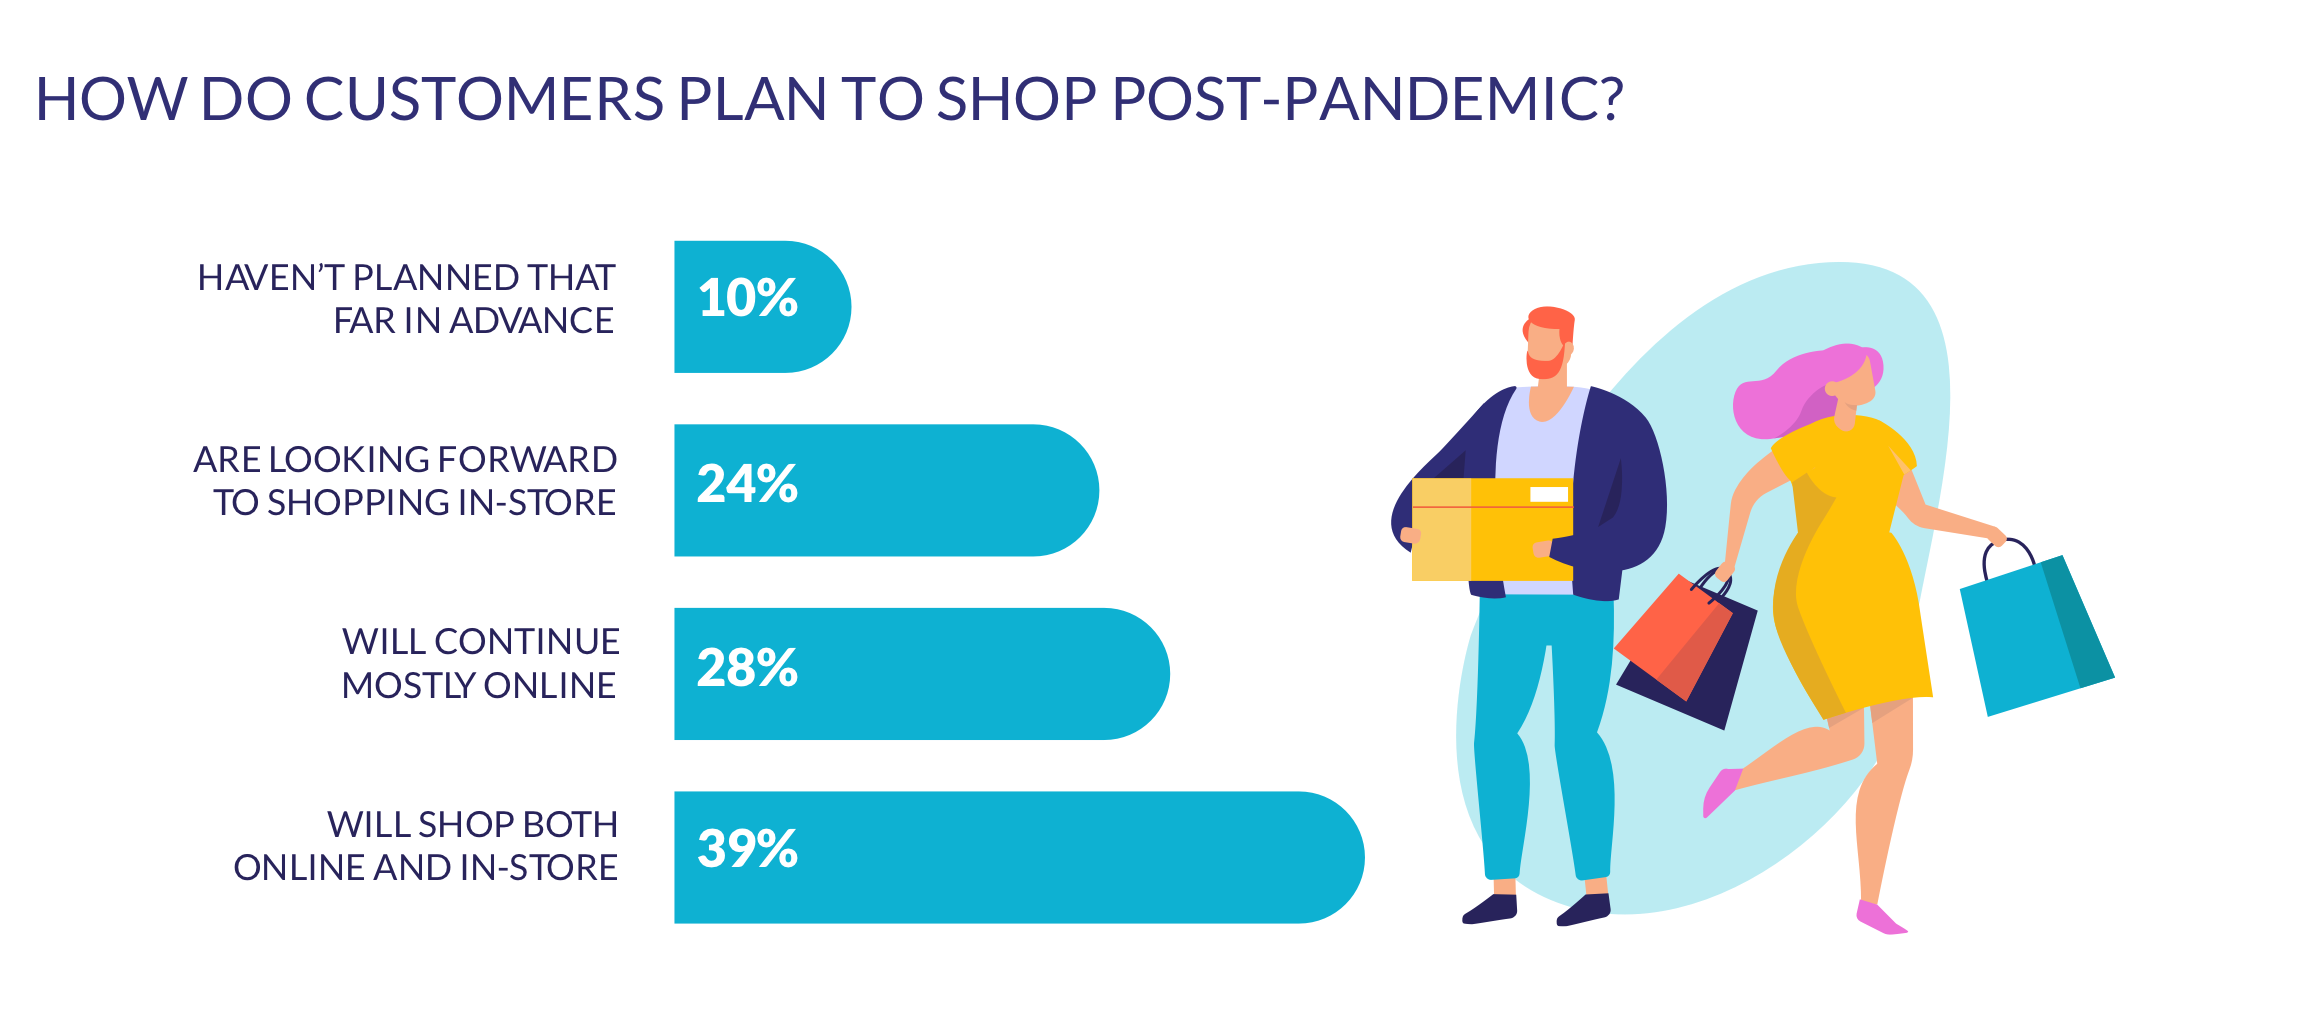 shopping plans post-pandemic